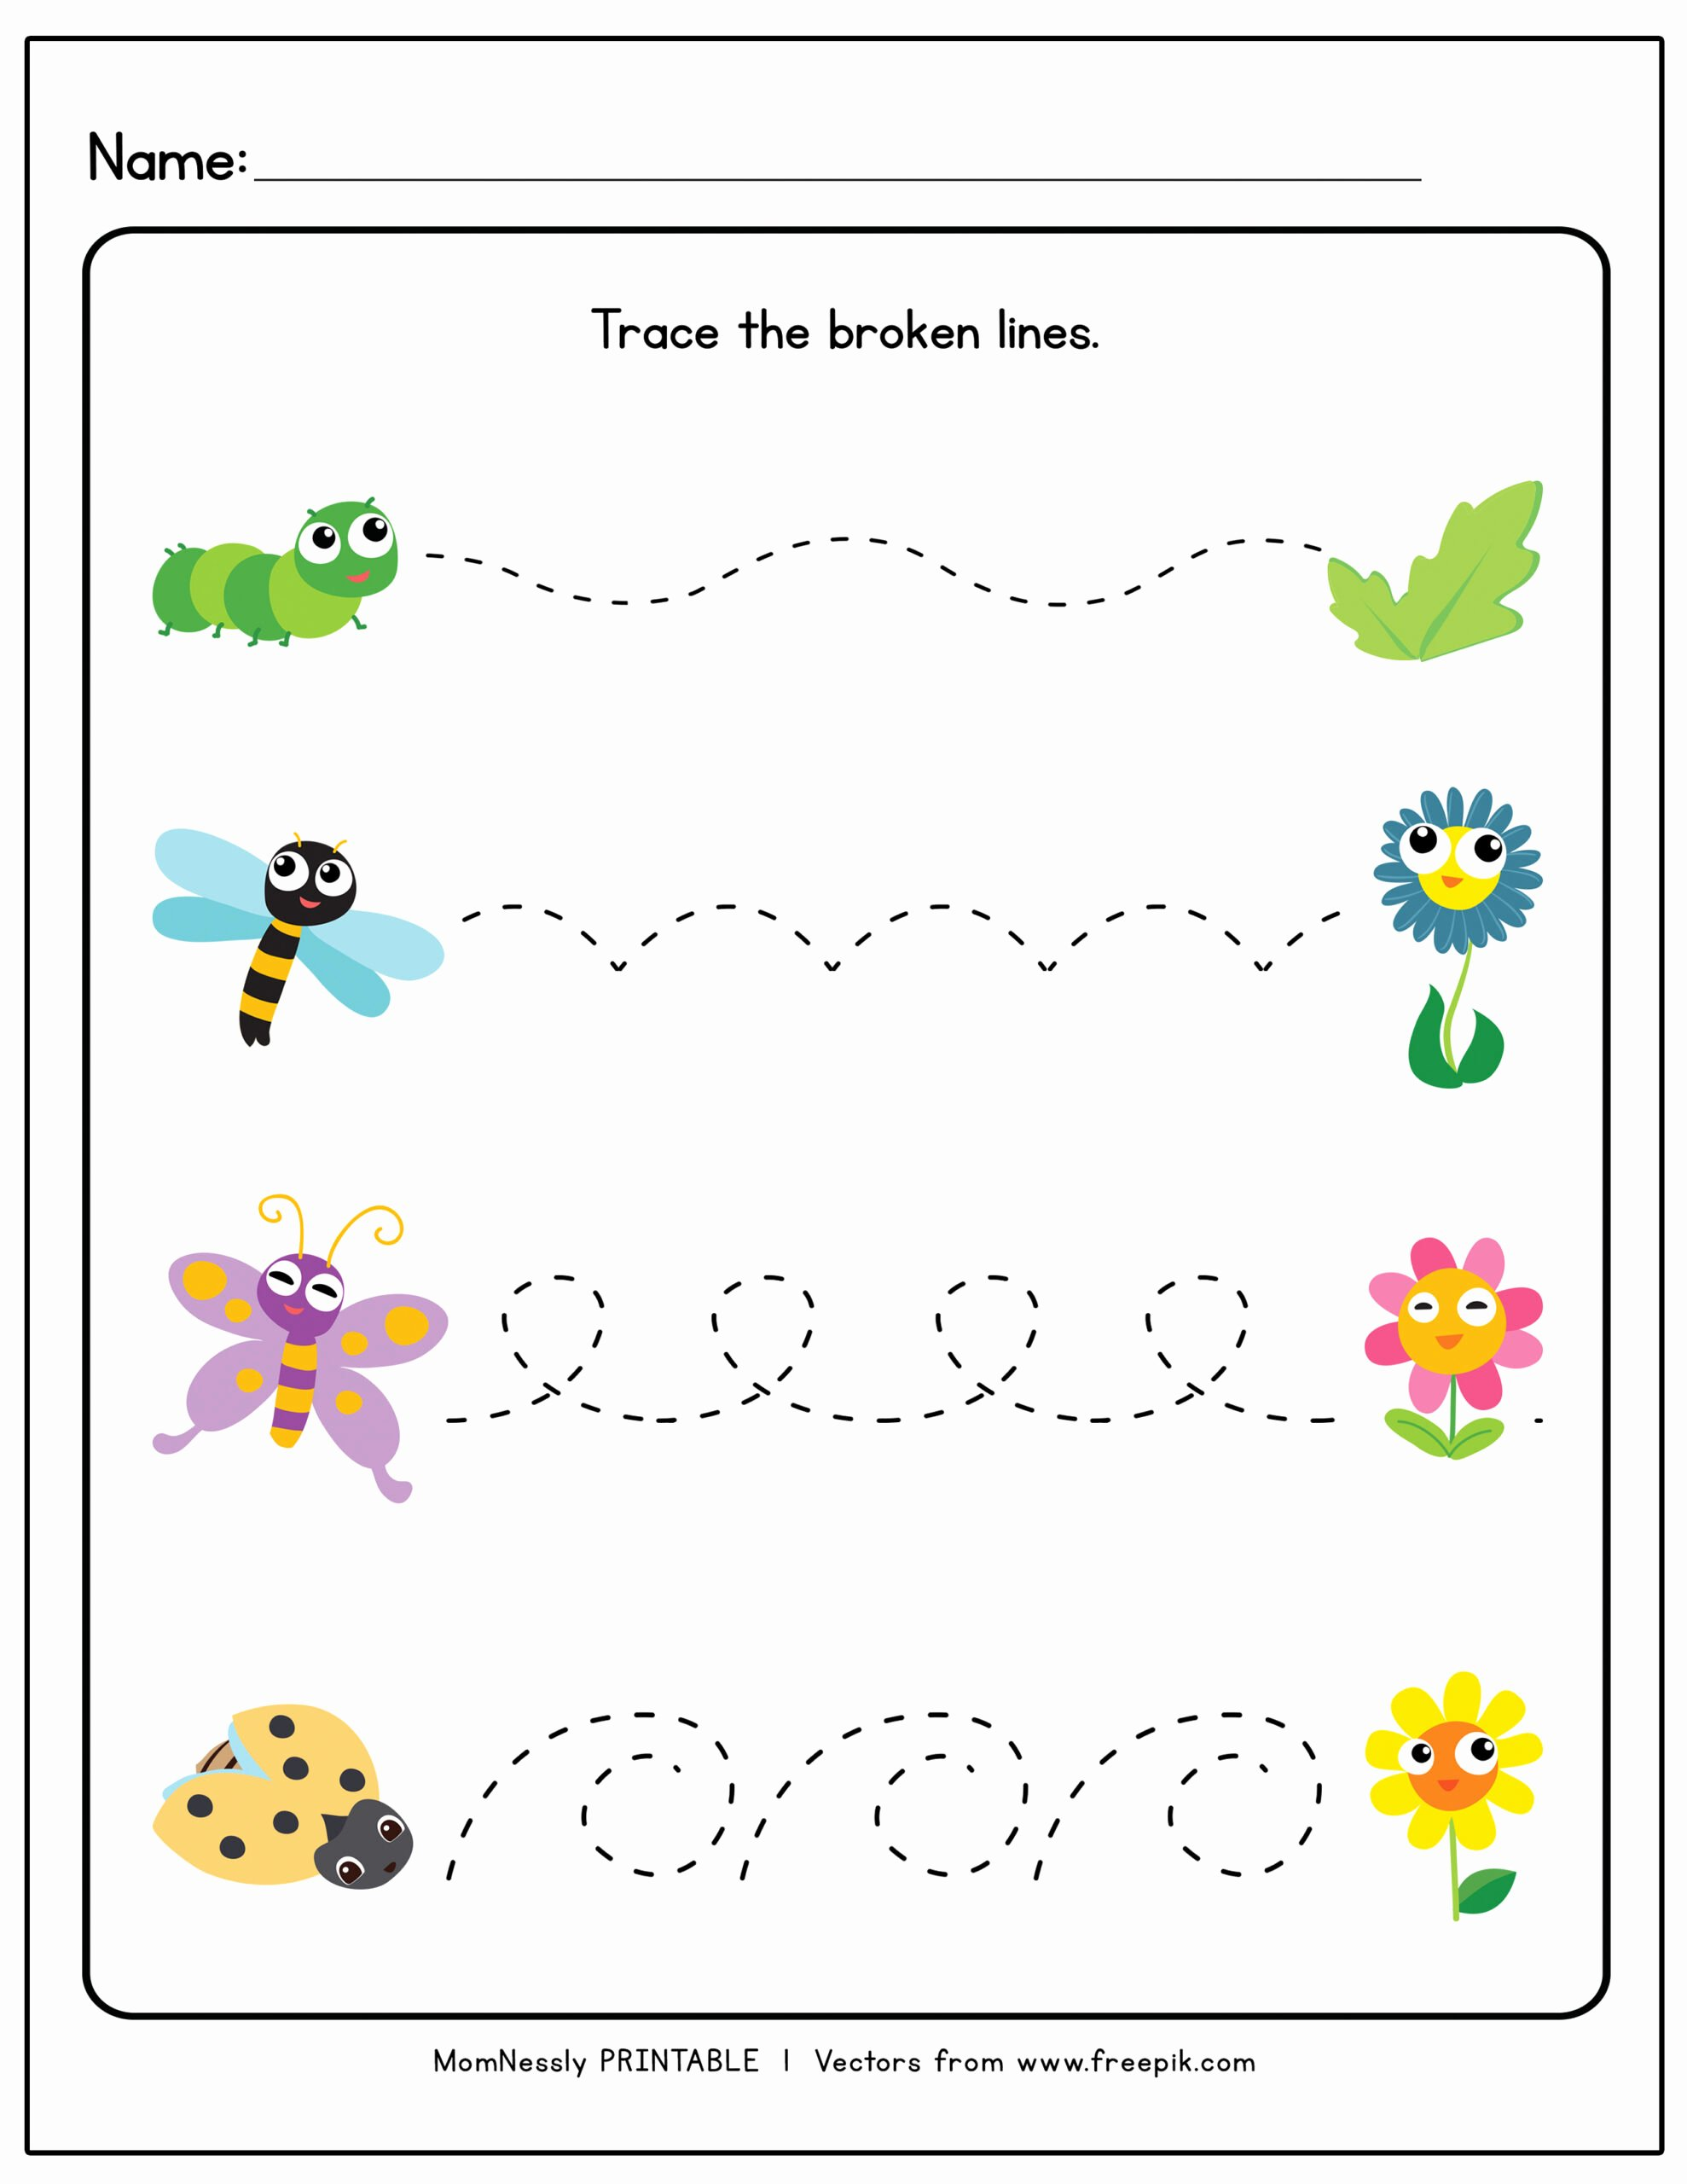 Tracing Lines Worksheets for Preschoolers Printable Tracing Lines Worksheets Https Tribobot for toddlers Curved